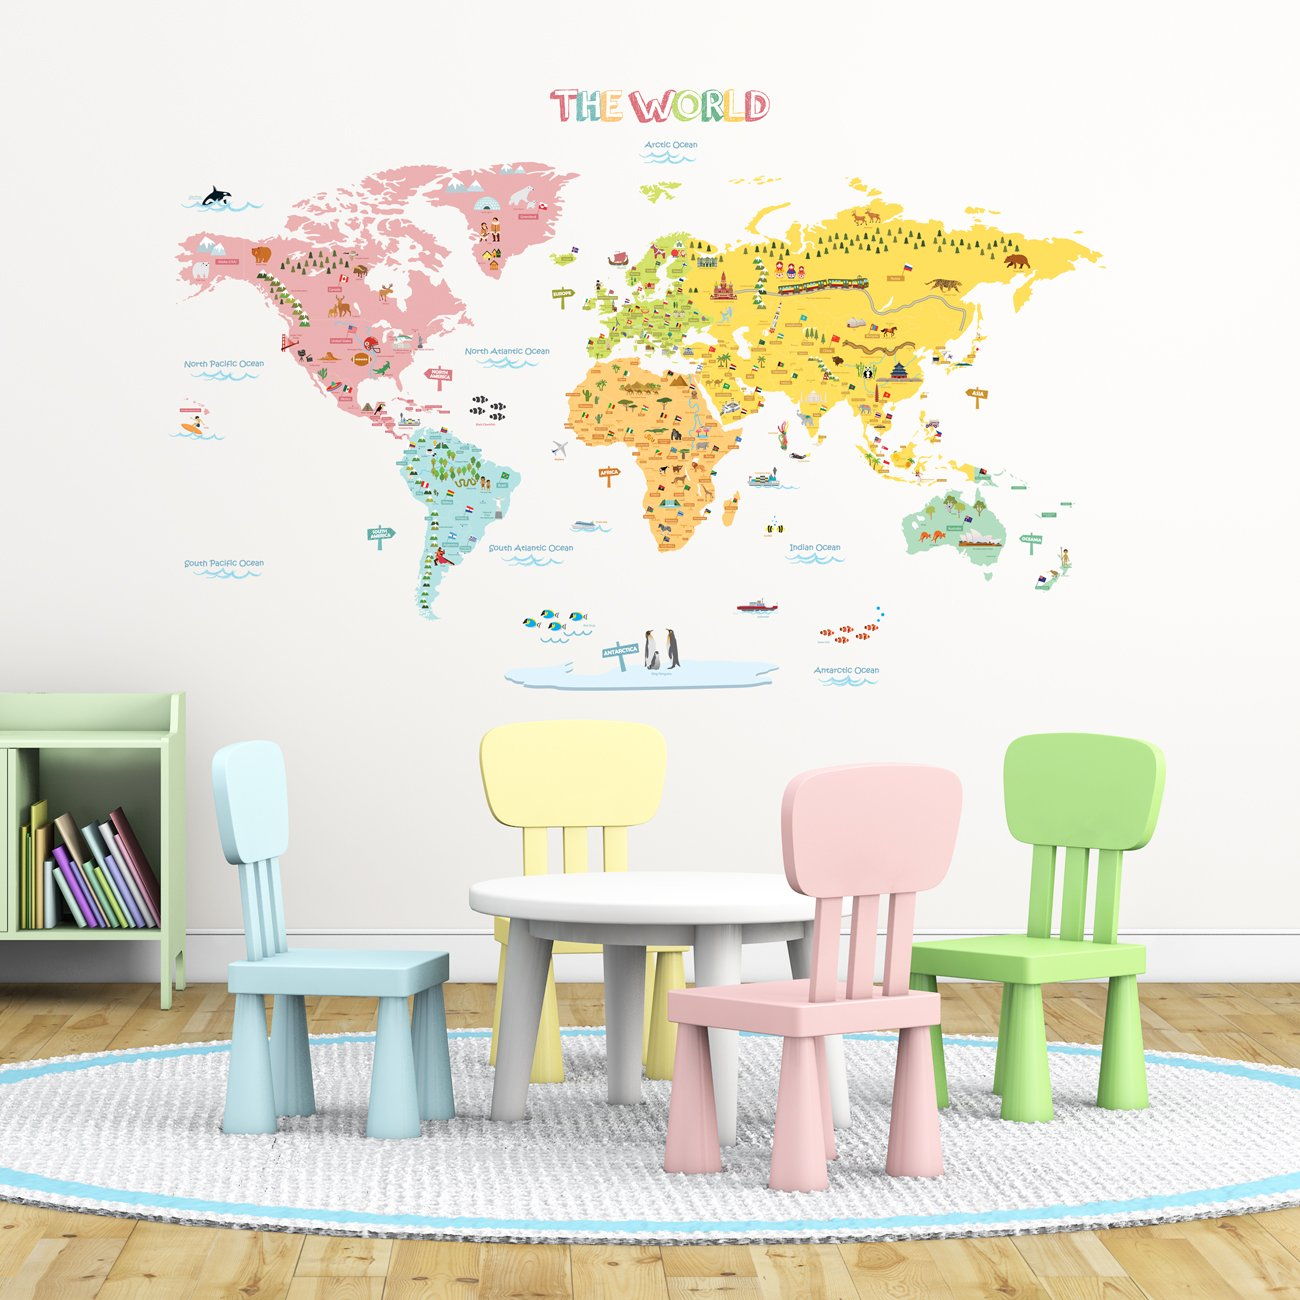 Nursery wall stickers amazon decowall dlt 1616n colourful world map kids wall stickers wall decals peel and stick removable amipublicfo Choice Image